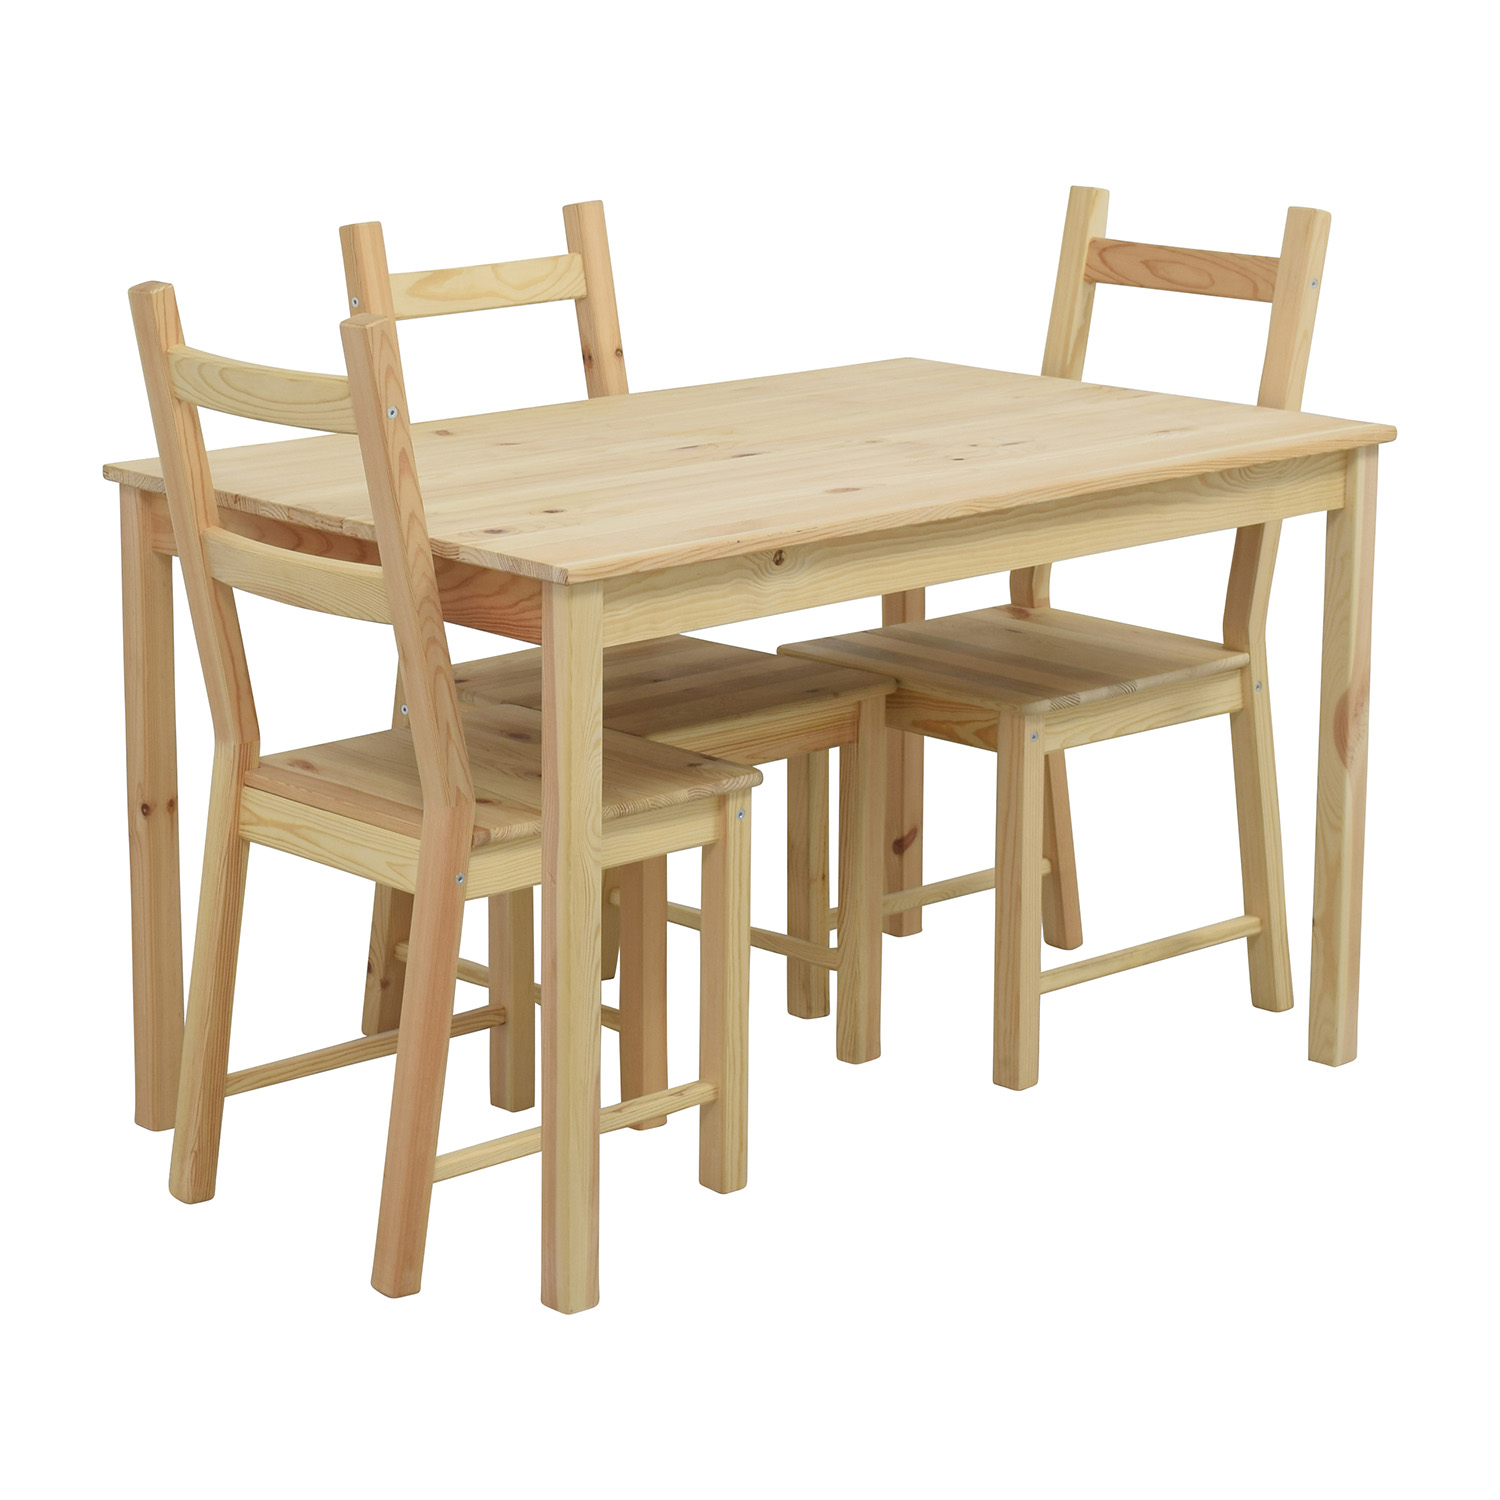 Ikea Ingo Pine Table With Ivar Chairs Dining Sets